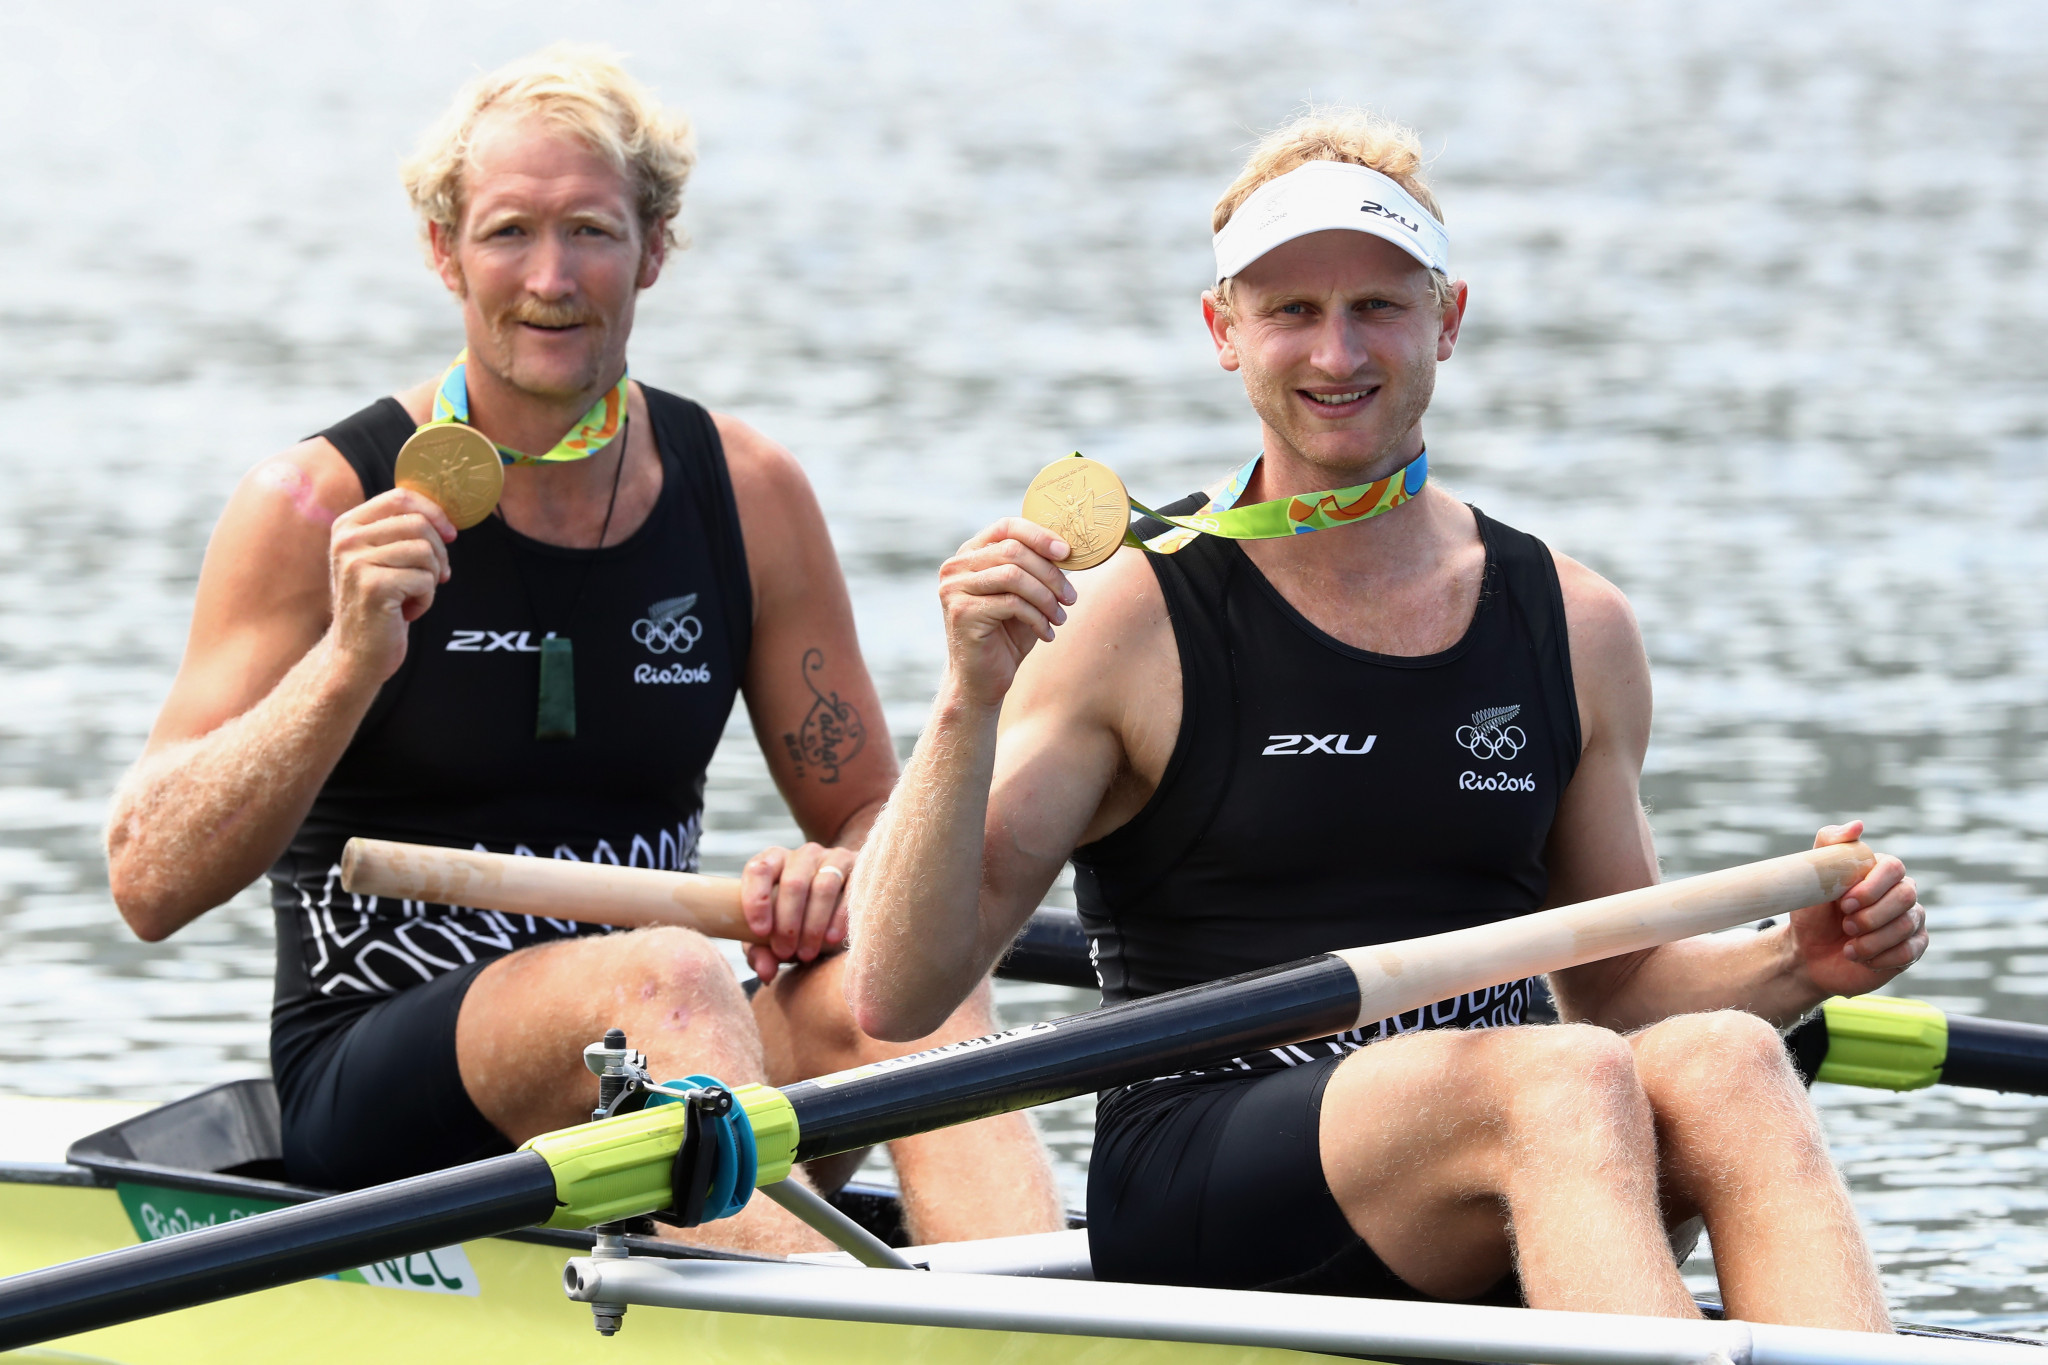 Murray and Bond win World Rowing's Thomas Keller Medal to mark outstanding careers